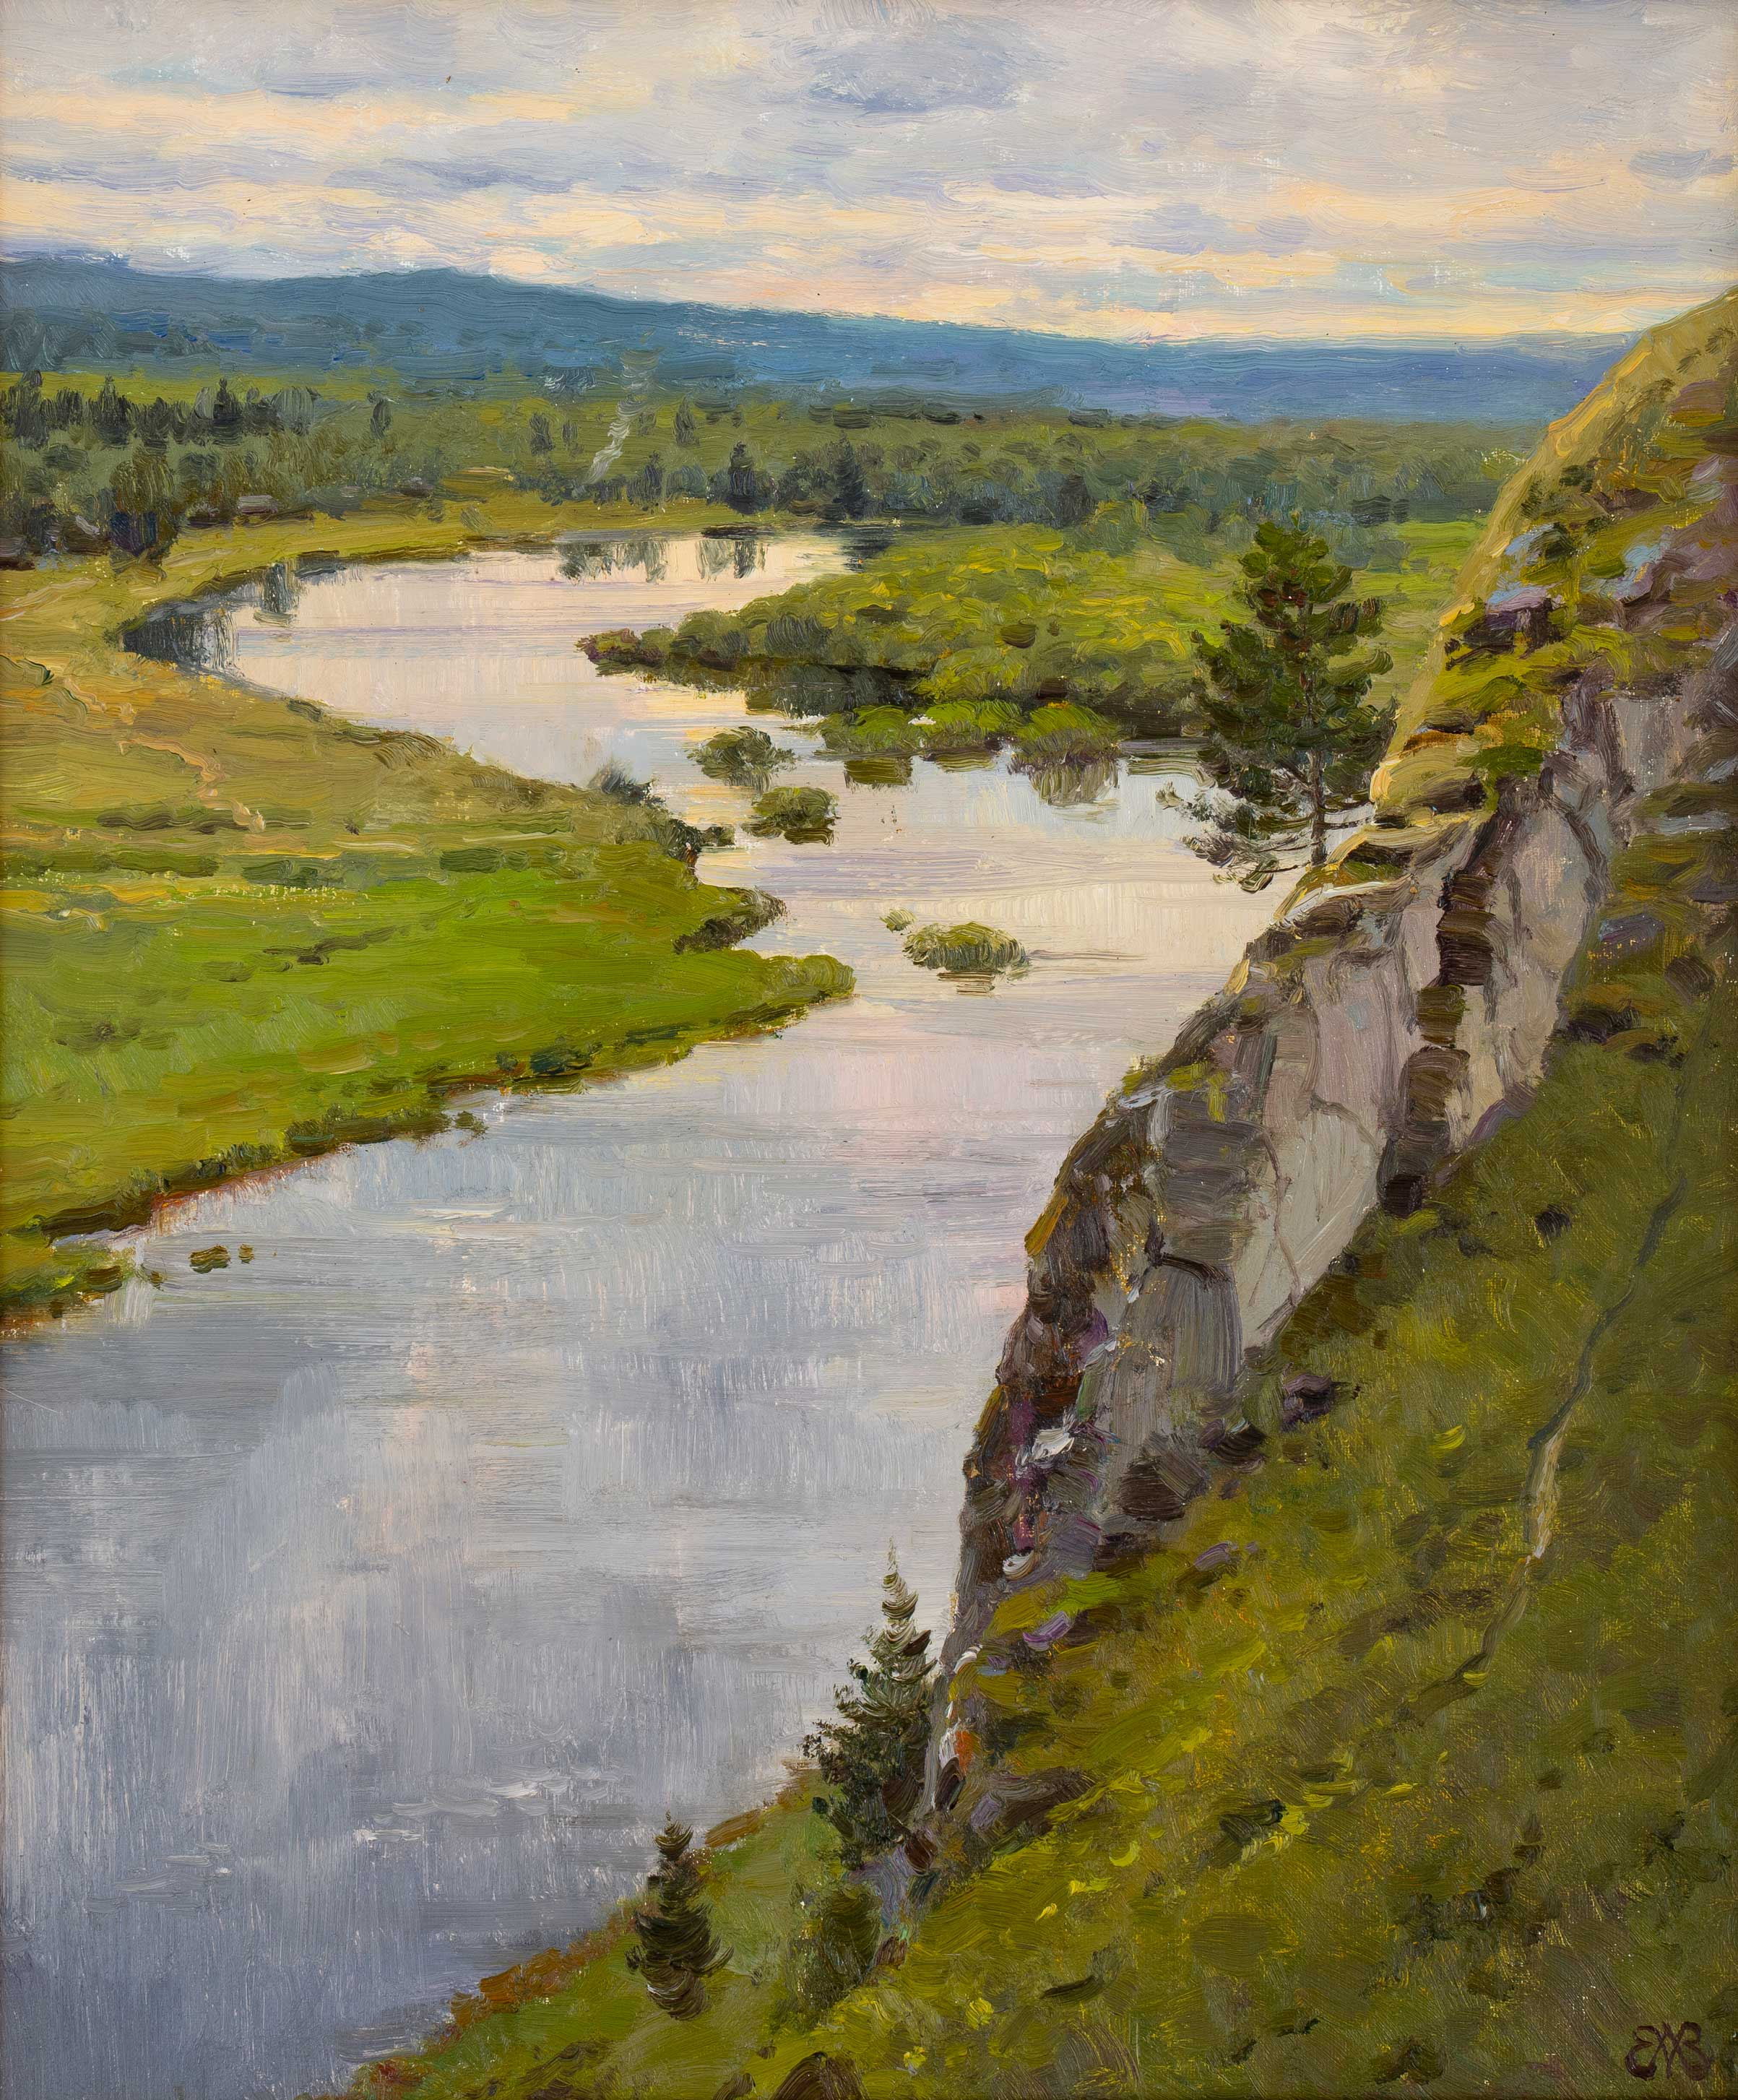 In Chusovoy, Alexey Efremov, Buy the painting Oil